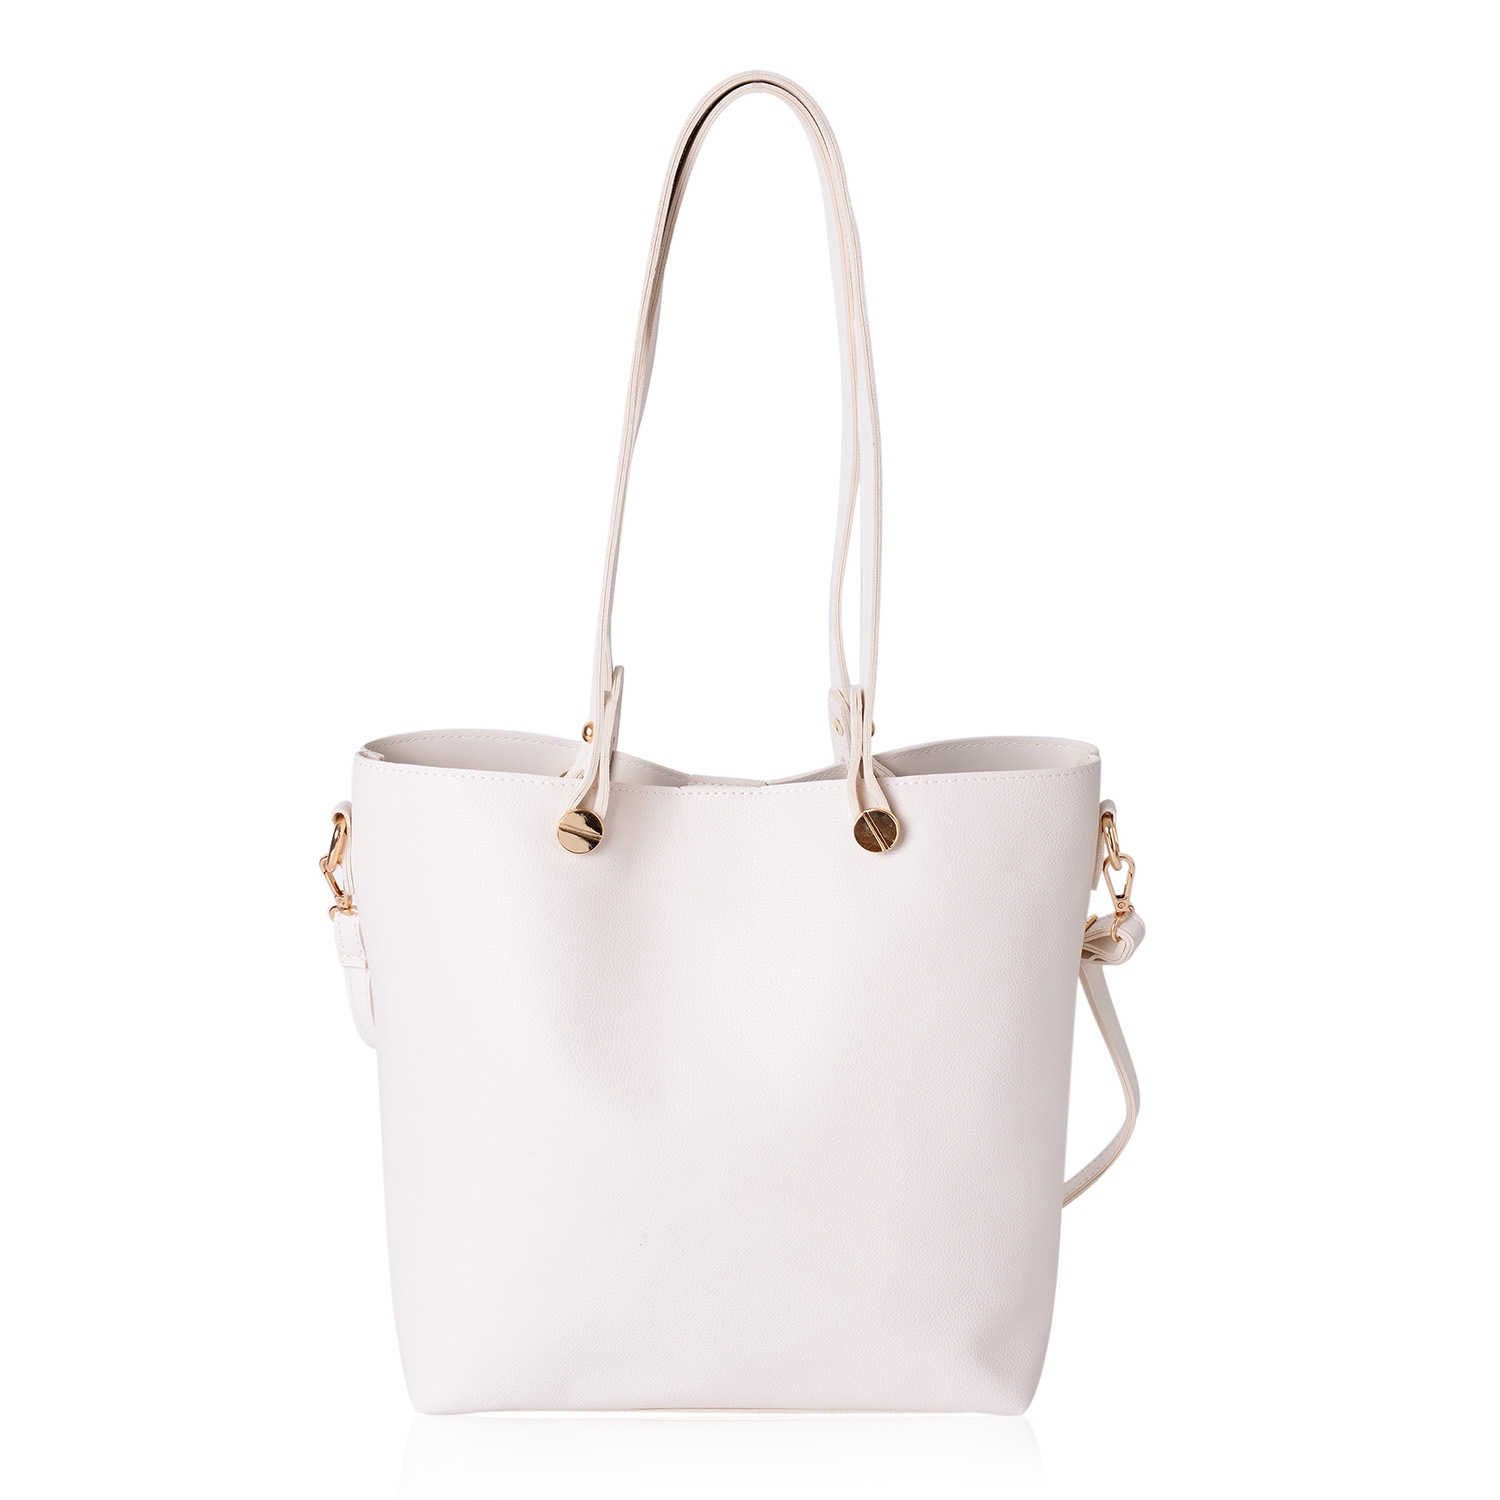 Madame CJ Vegan Leather Tote with pouch in Cream - Houzz of DVA Boutique